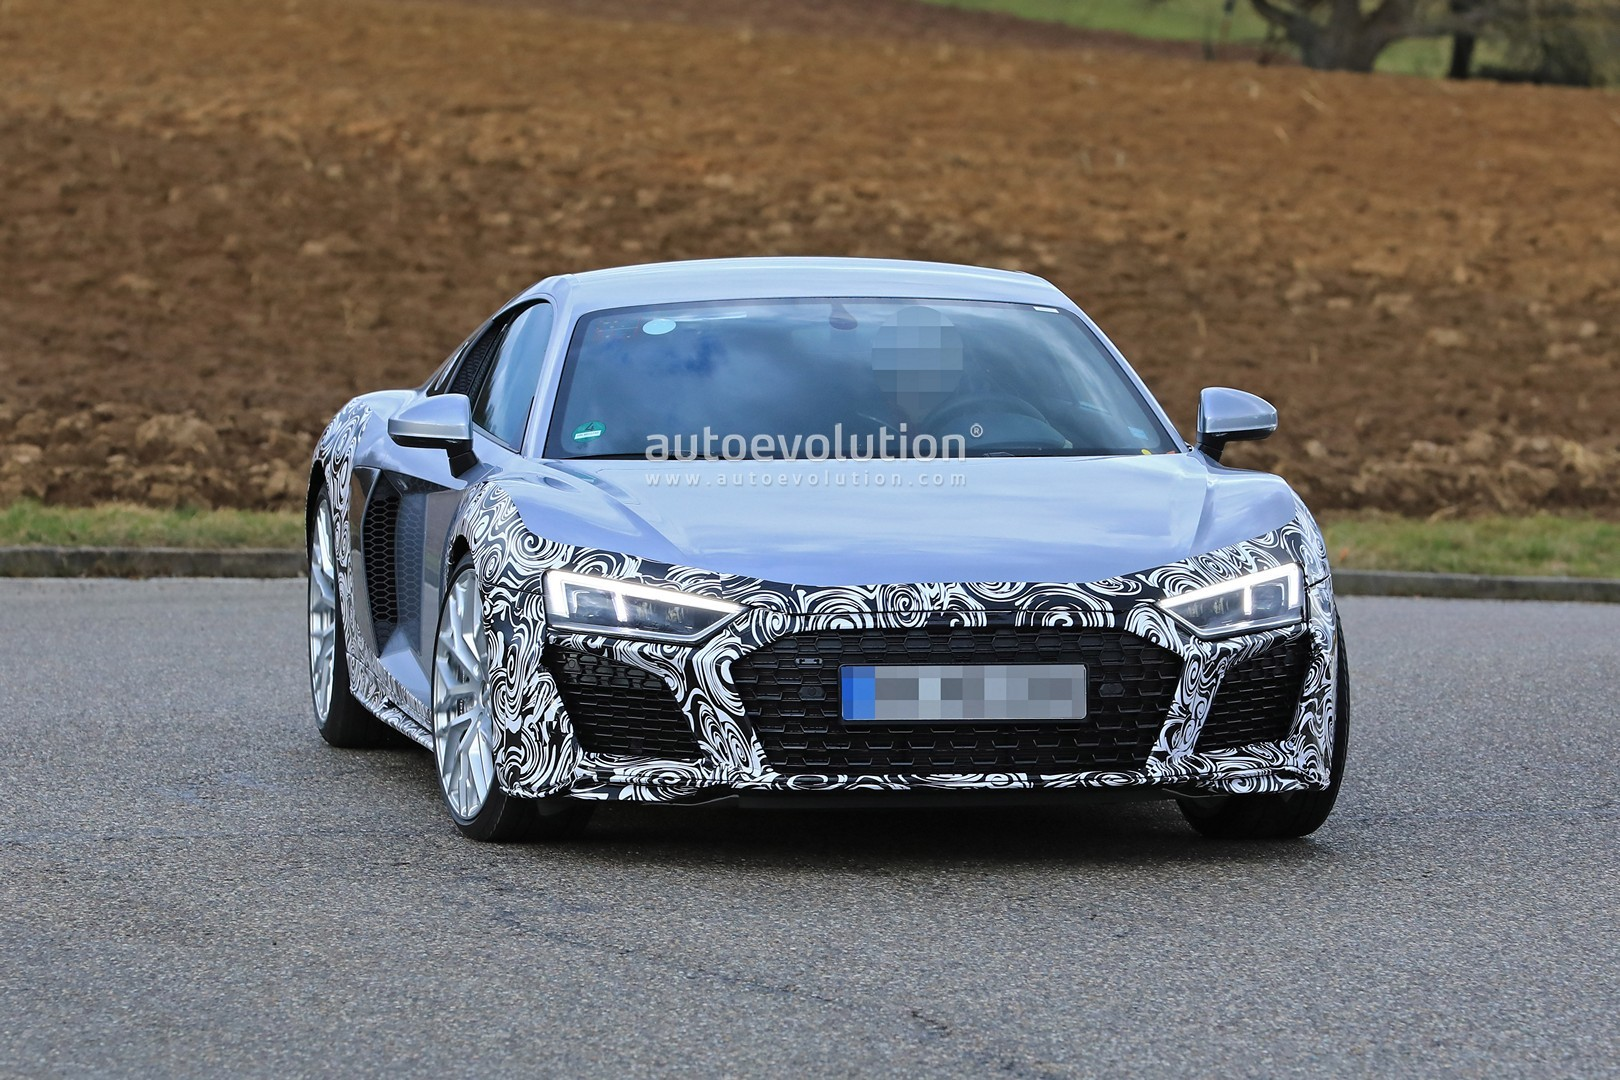 Spyshots Audi R8 Facelift Makes Testing Debut Looks Like